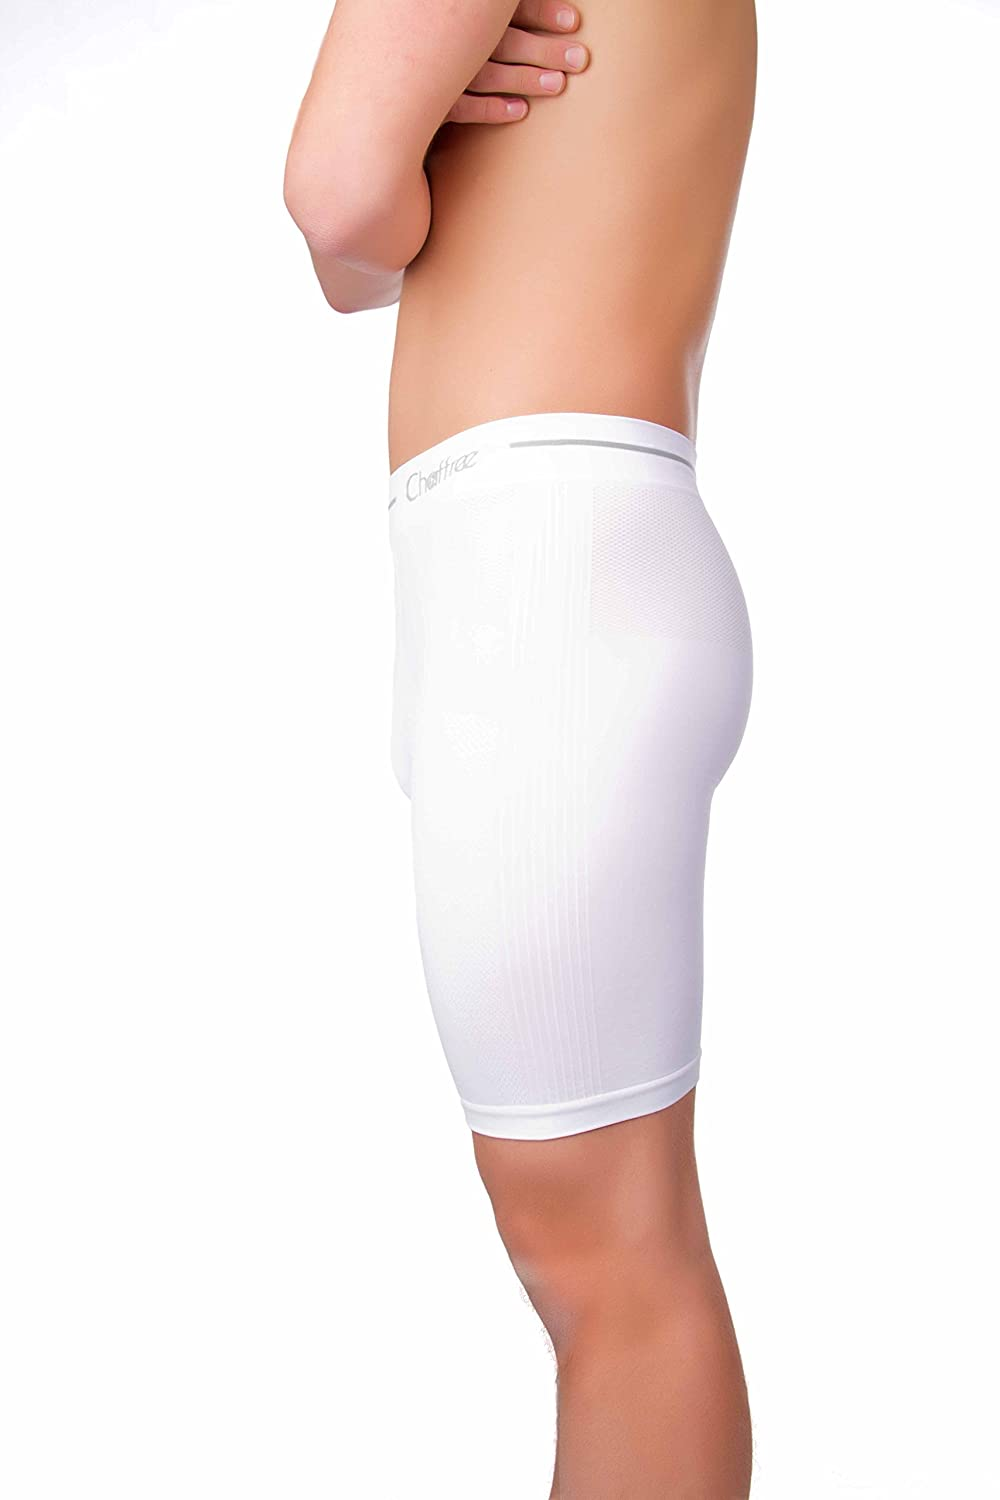 Chaffree Mens Briefs Underpants, Moisture Wicking, Sweat and Chafing Control, Stretchy Seamless, Traditional High Waist Ultra Comfortable Pants, Sports Gym Exercise Underwear 5 Pack Short & Long Leg